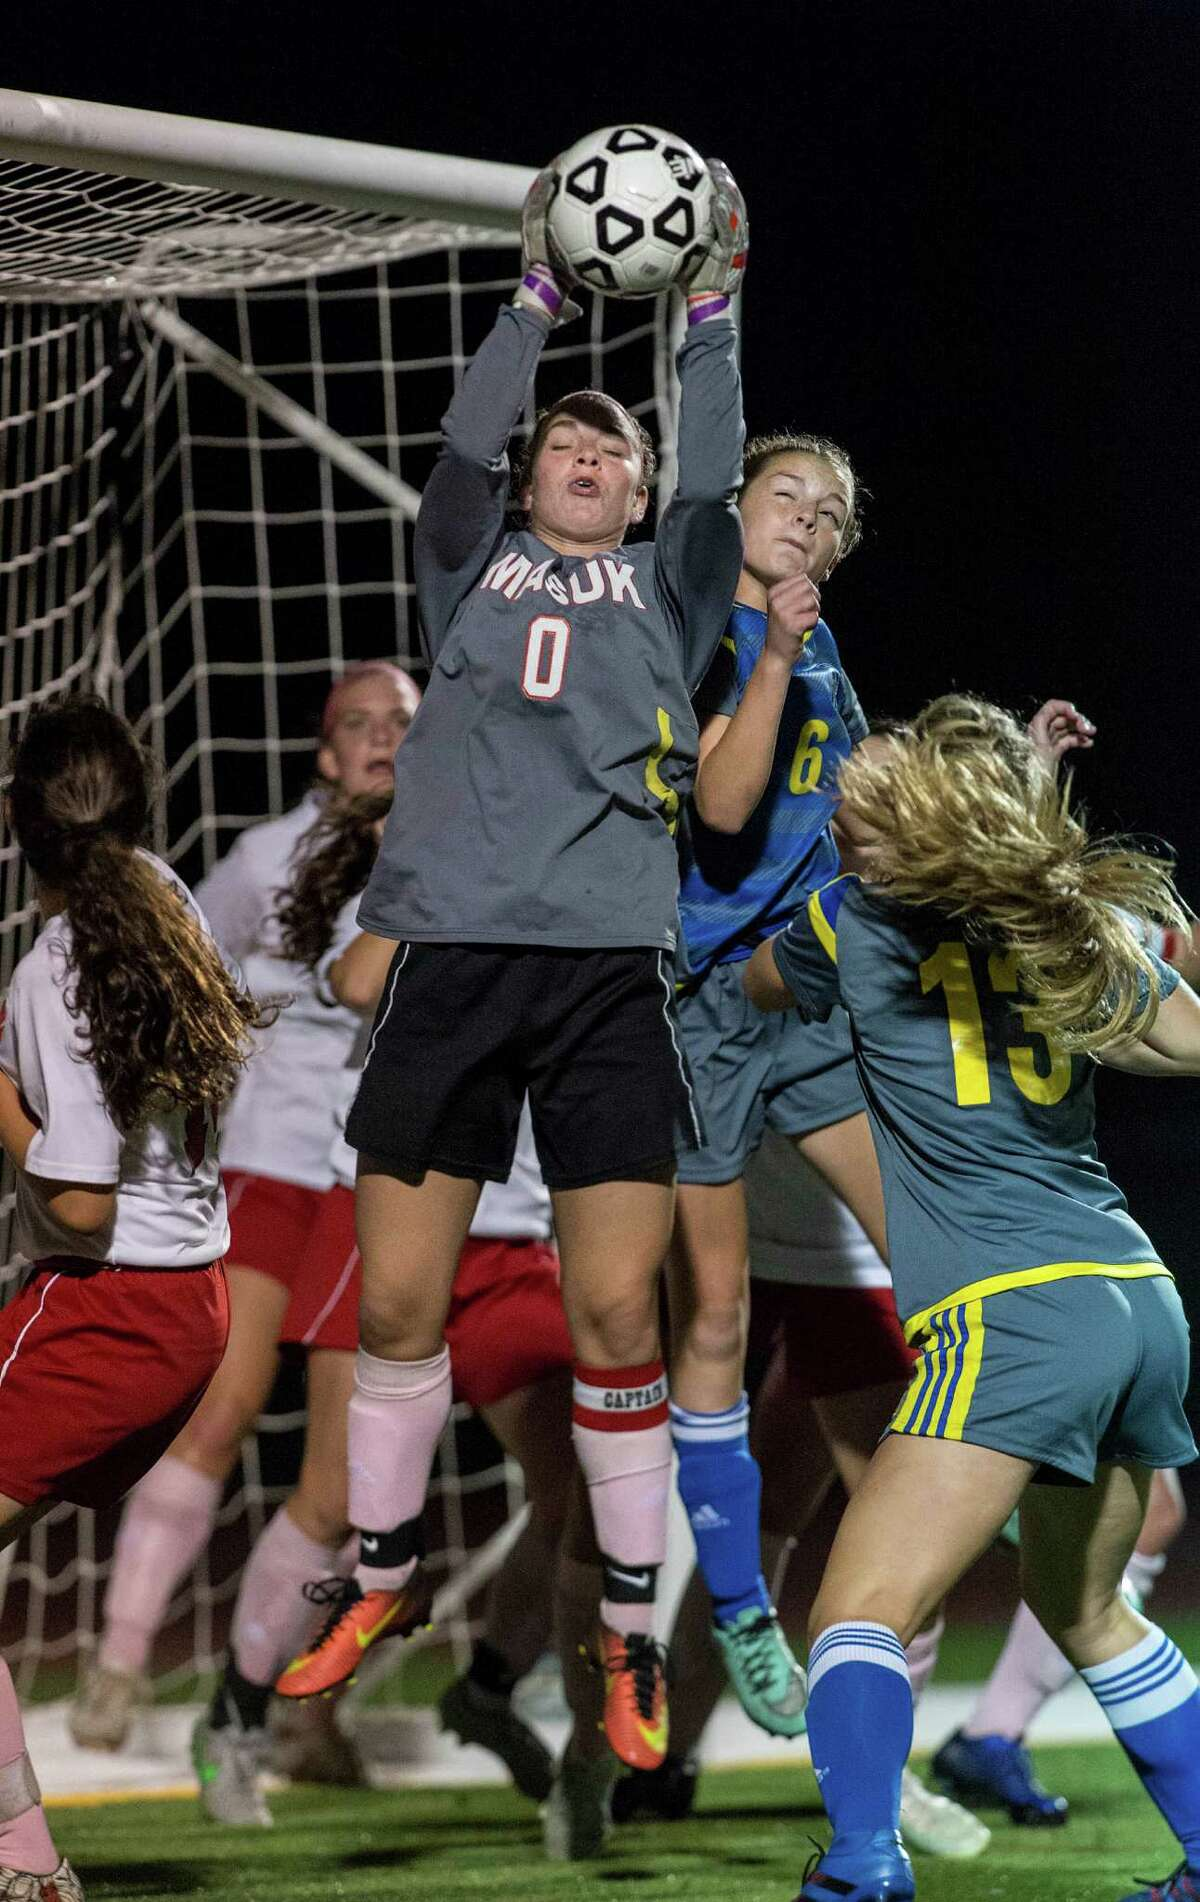 Masuk High School goalie Calli Sederquest makes a save on a corner kick during a girls soccer game against Newtown High School played at Masuk High School, Monroe, CT on Friday, October 7, 2016.